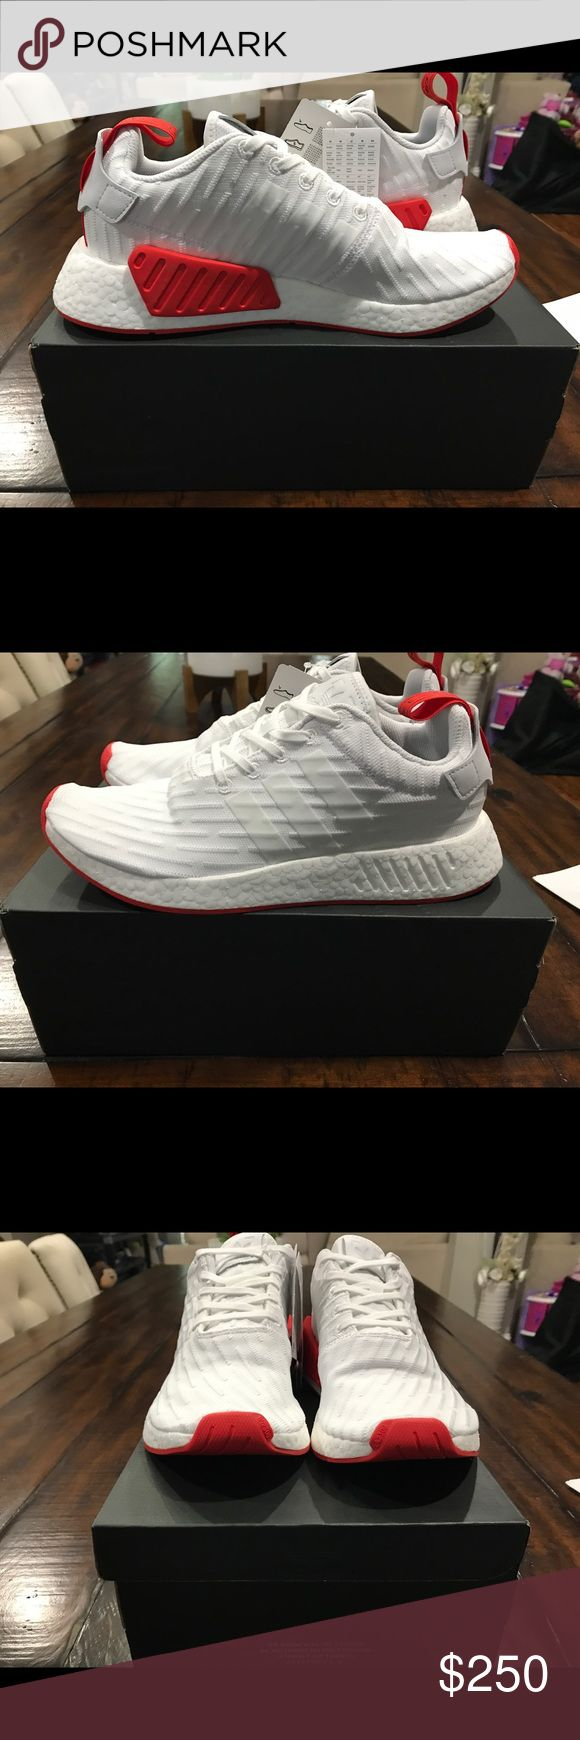 Best Sneakers Images On Pinterest Flats Adidas Sneakers And - Free invoice template google docs best online sneaker store